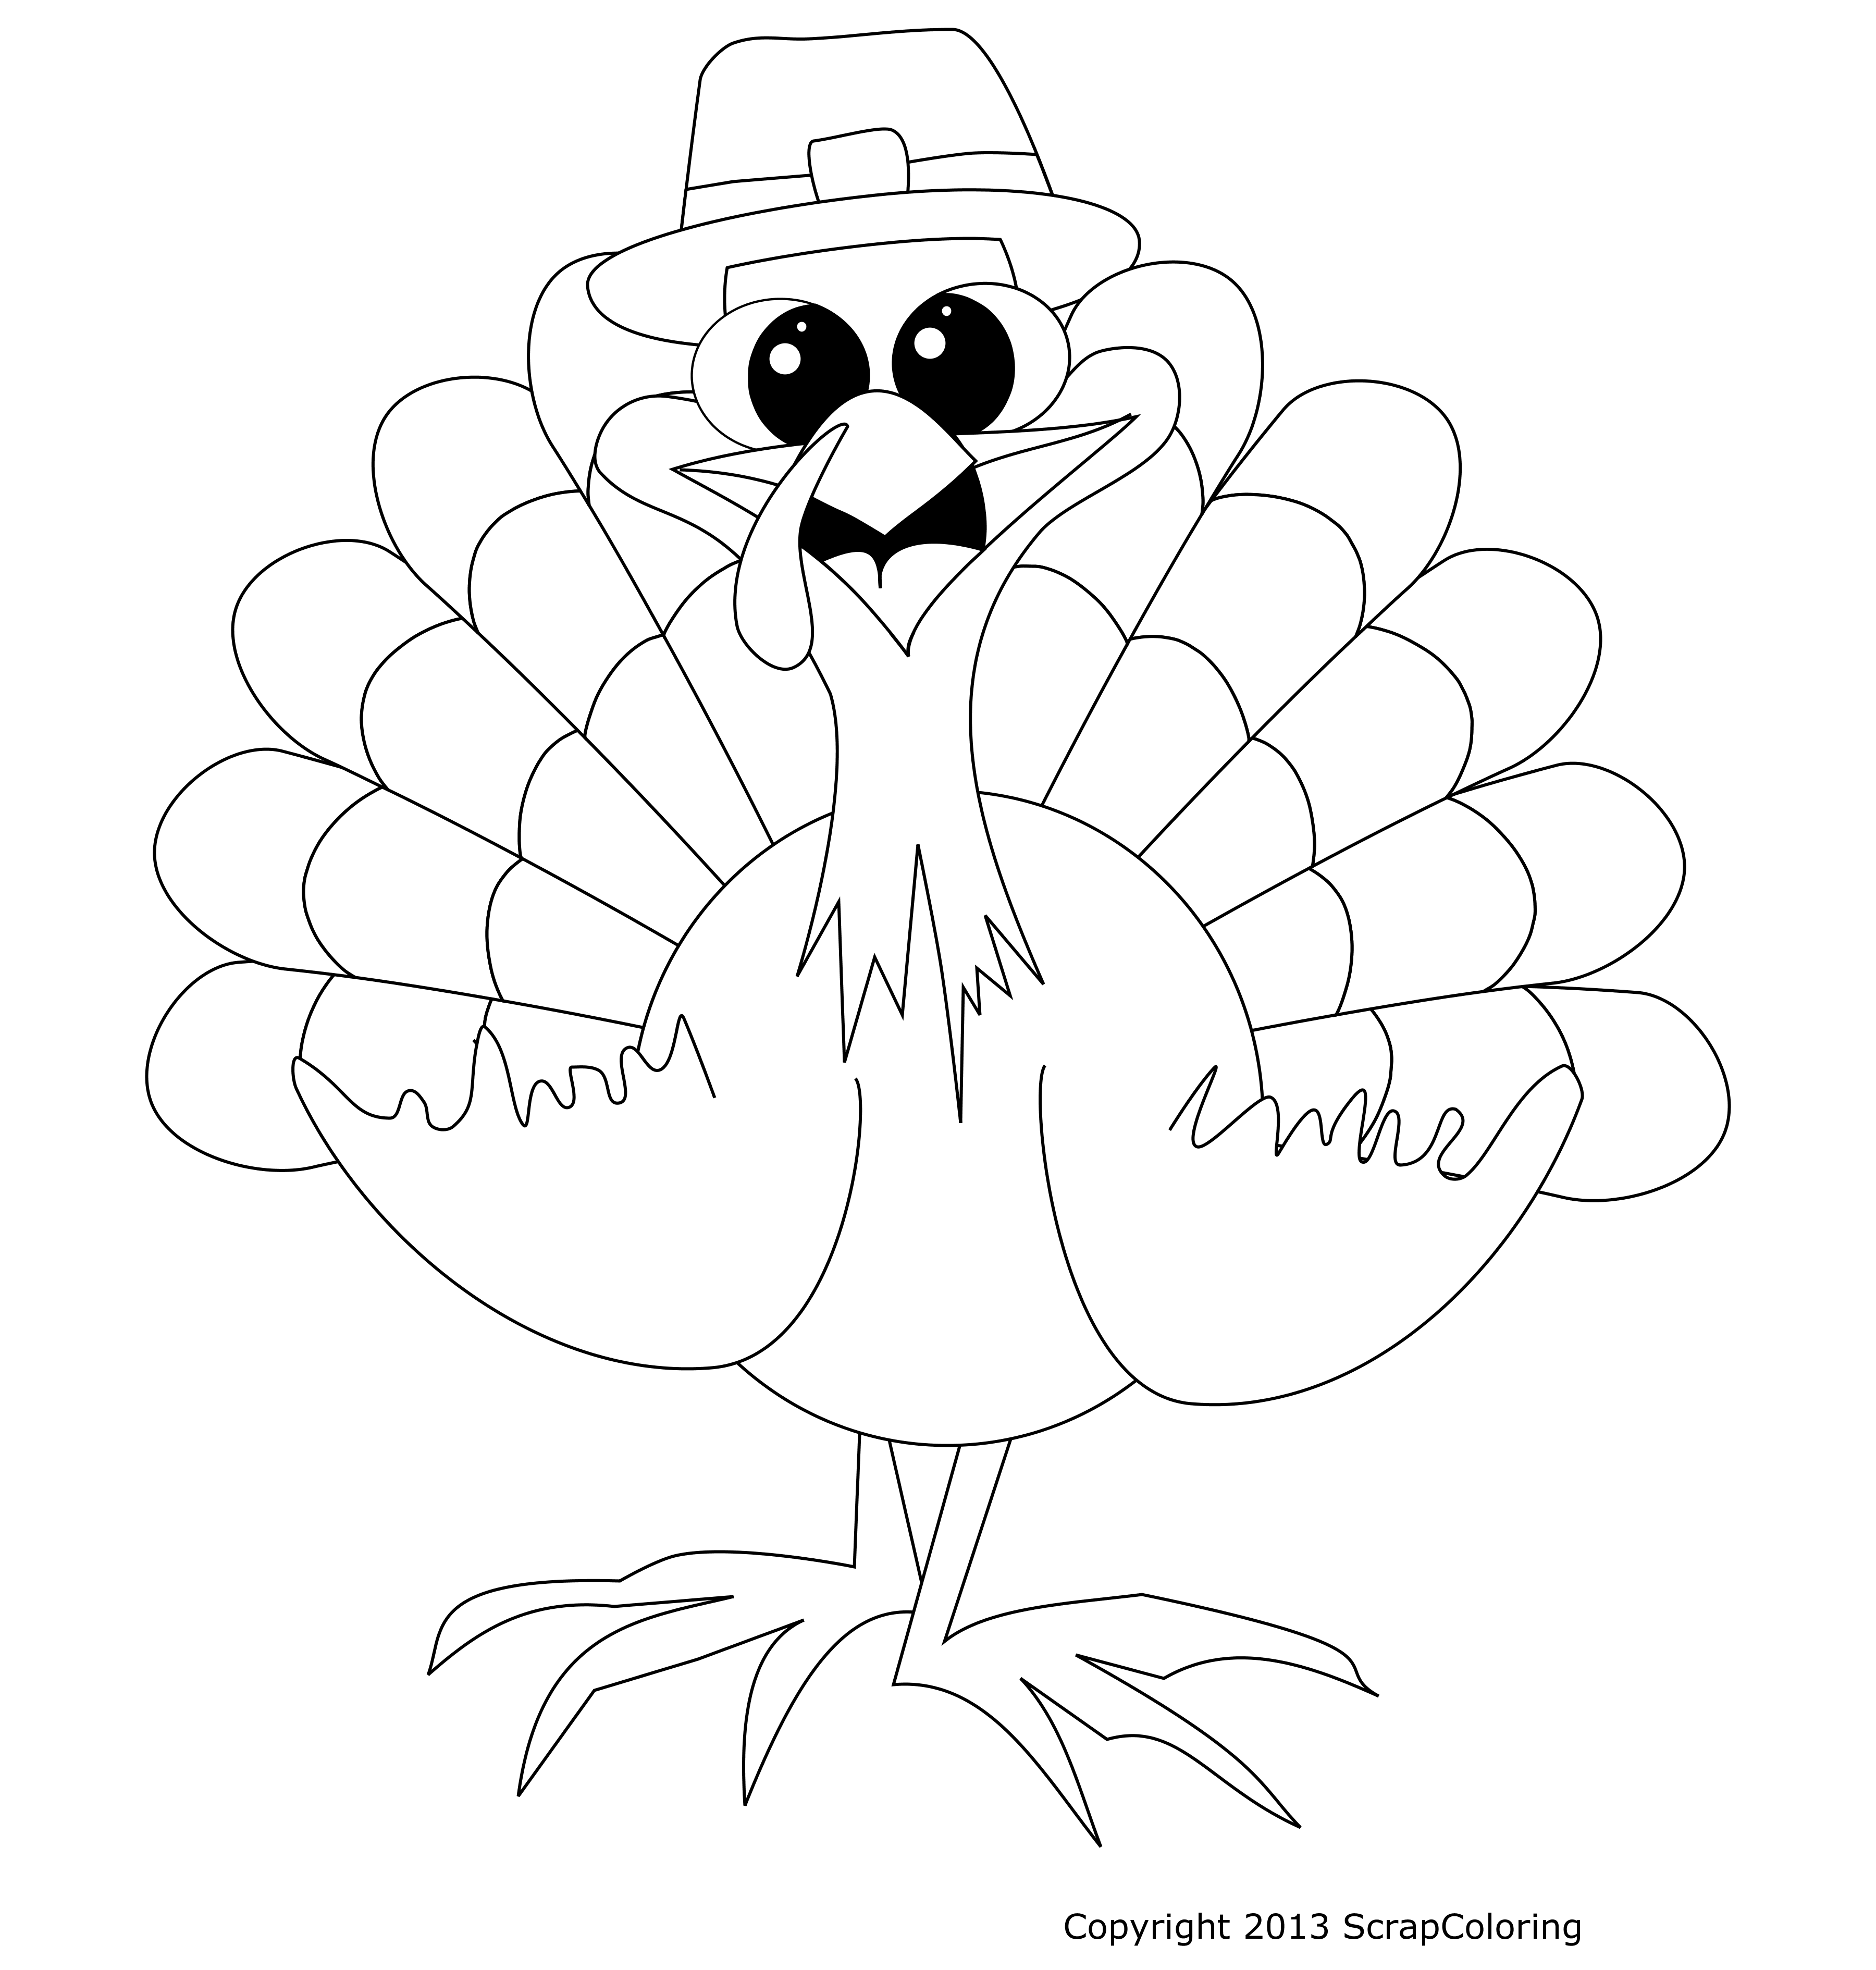 how to draw a turkey turkey drawing at getdrawings free download draw how turkey to a